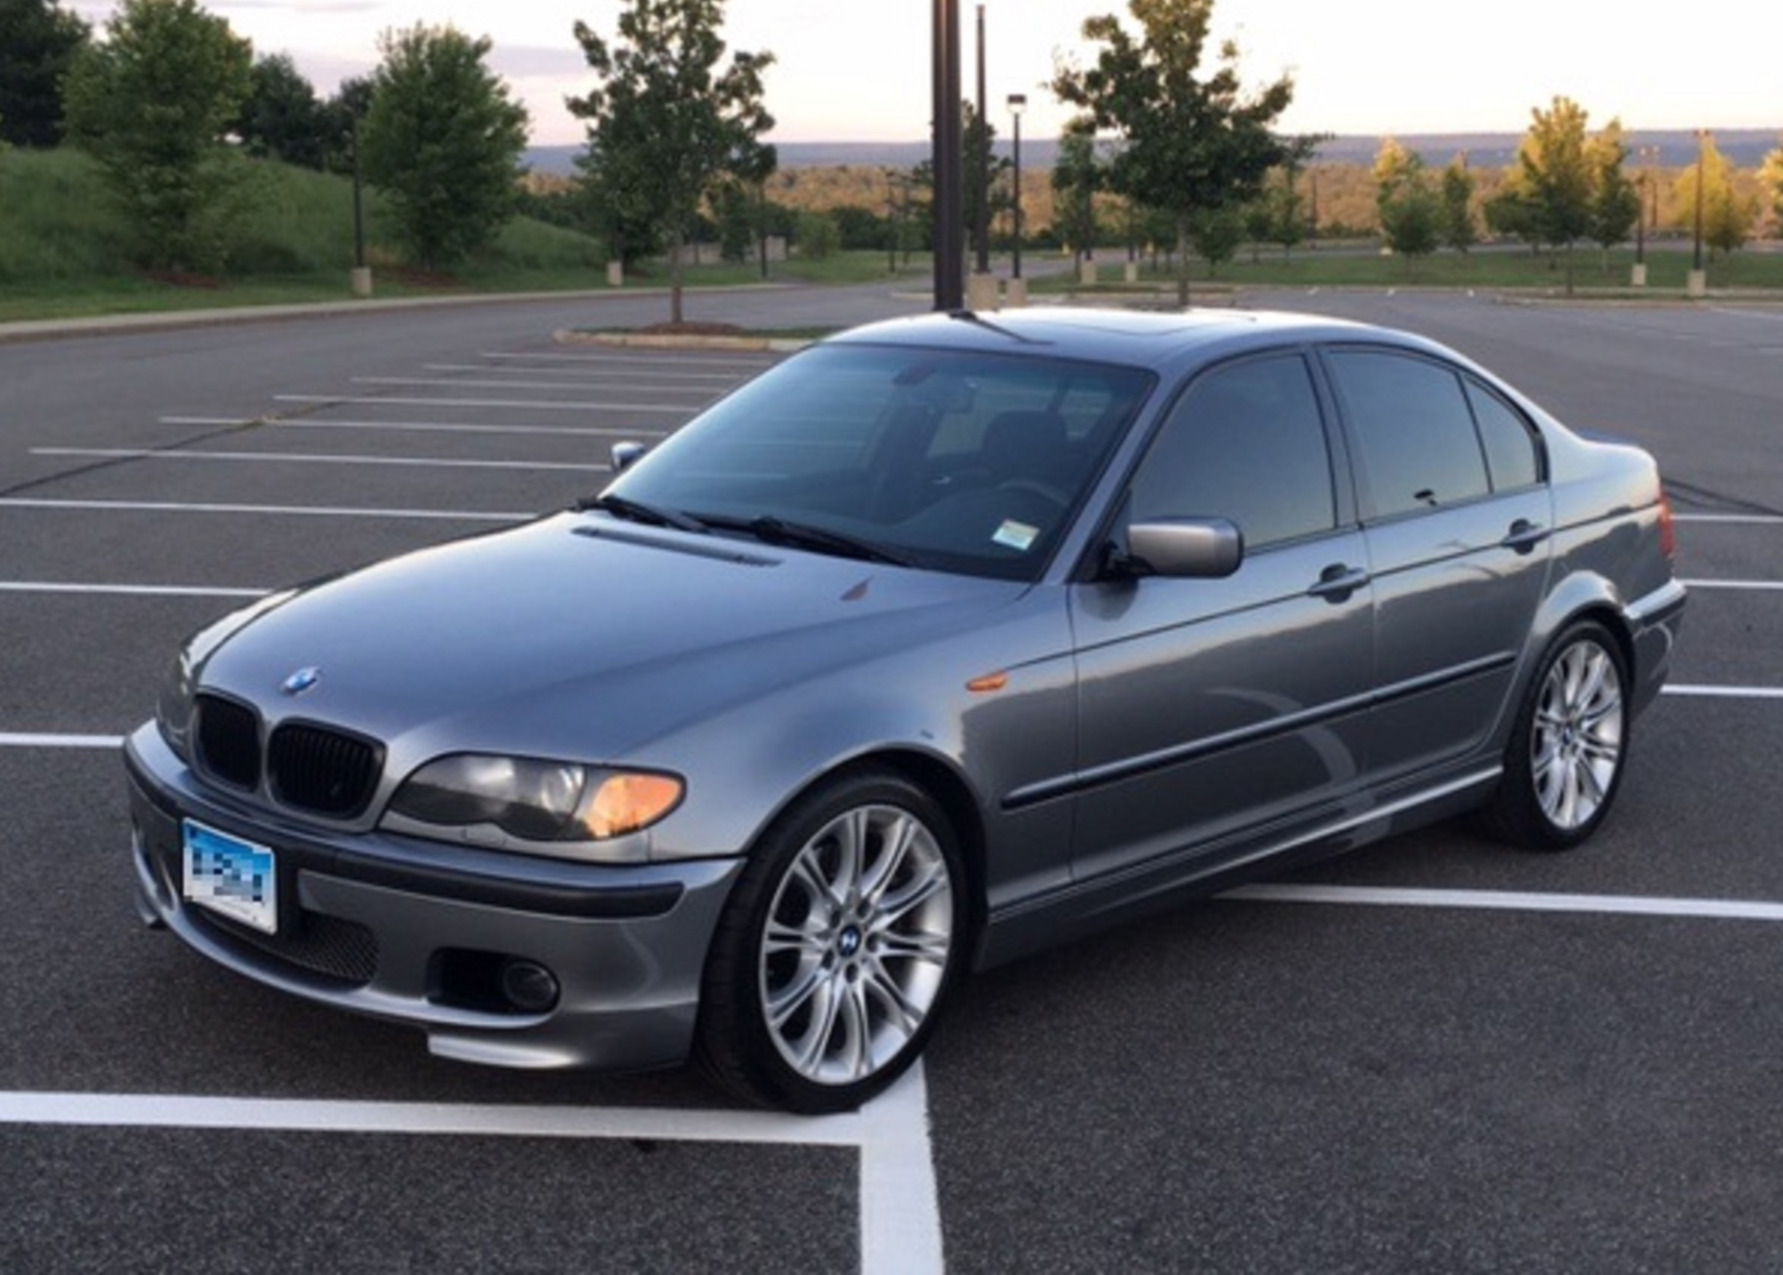 hight resolution of 2004 bmw 330i zhp 6 speed for sale on bat auctions sold for 7 700 on august 24 2018 lot 11 858 bring a trailer